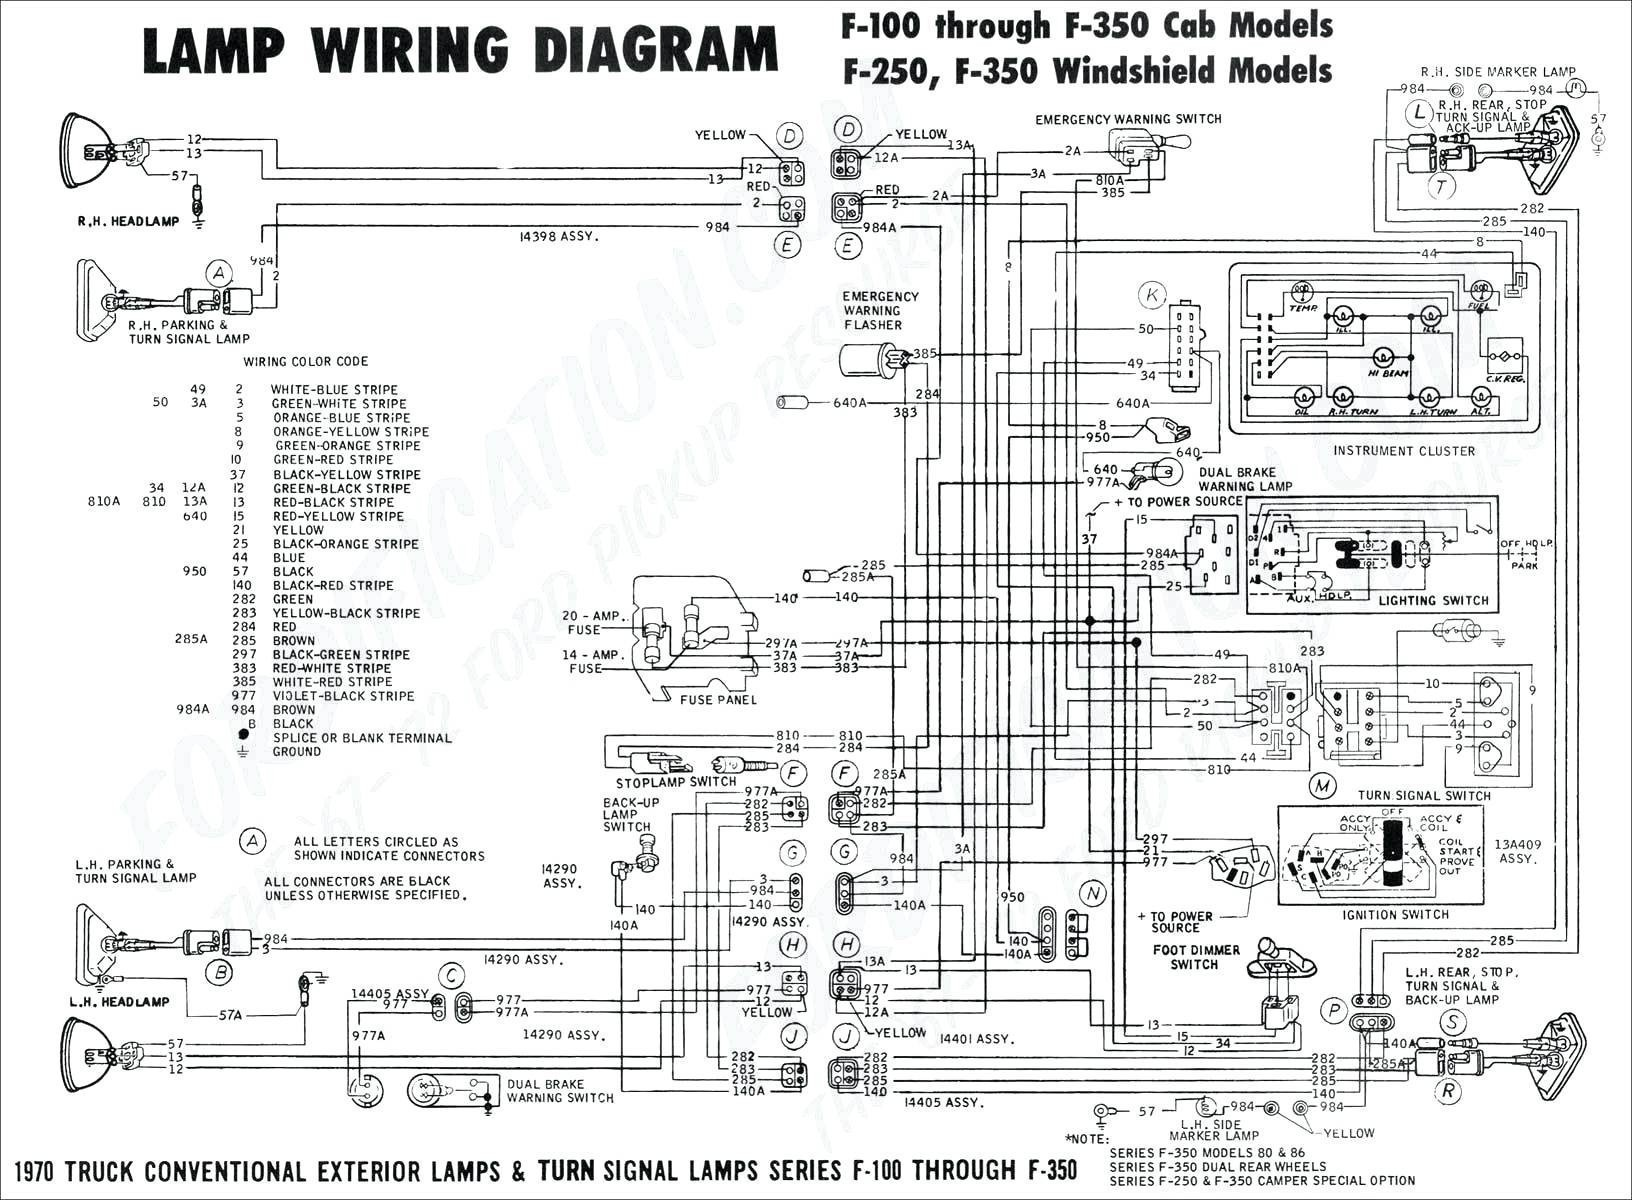 Subaru Impreza Wiring Diagram 86 ford F 150 Wiring Diagram Reveolution Wiring Diagram • Of Subaru Impreza Wiring Diagram